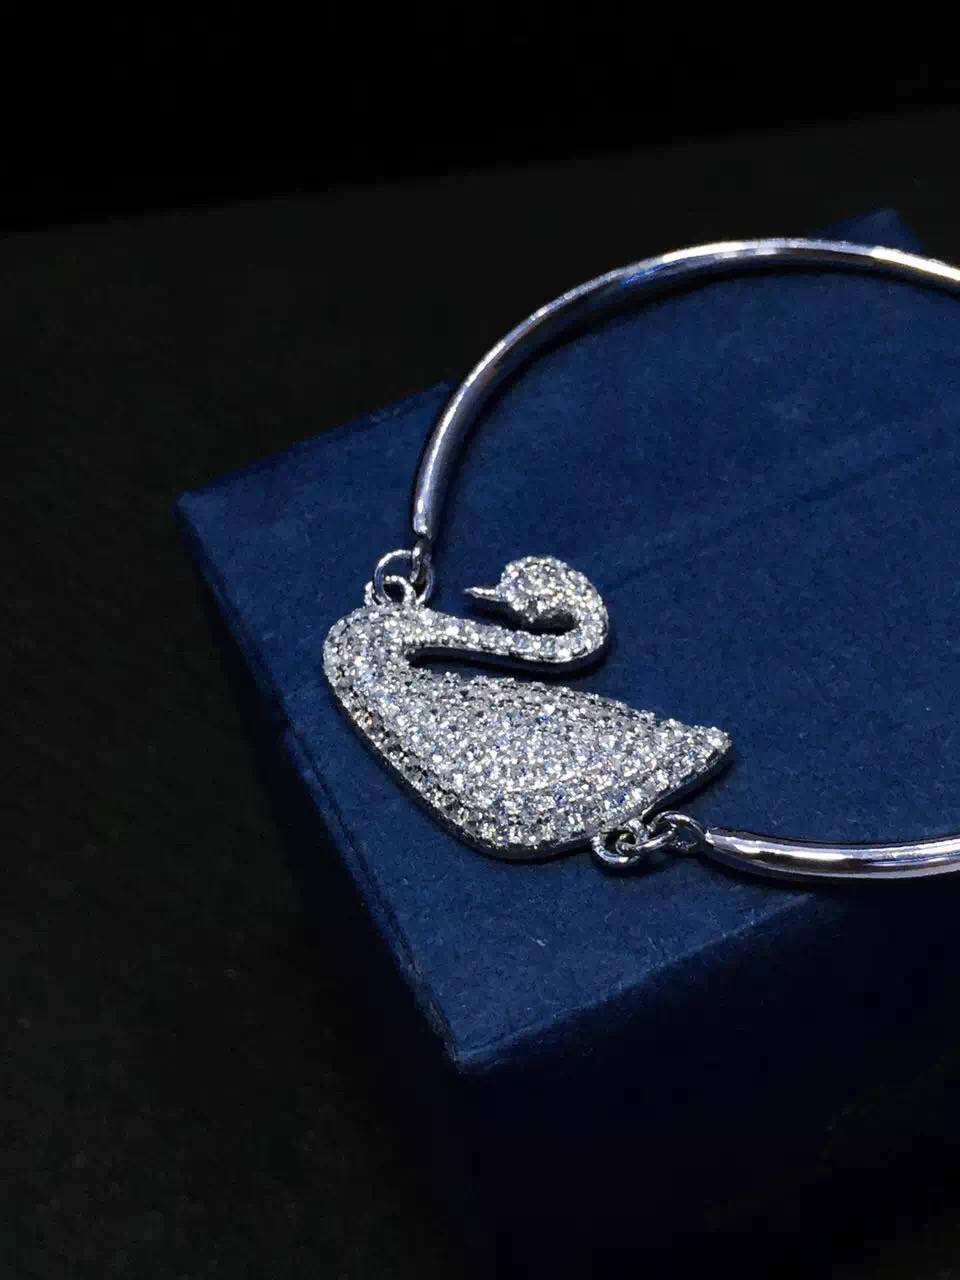 NEFFLY 2016 new arrival white swan 925 silver Charm Bracelet free shipping